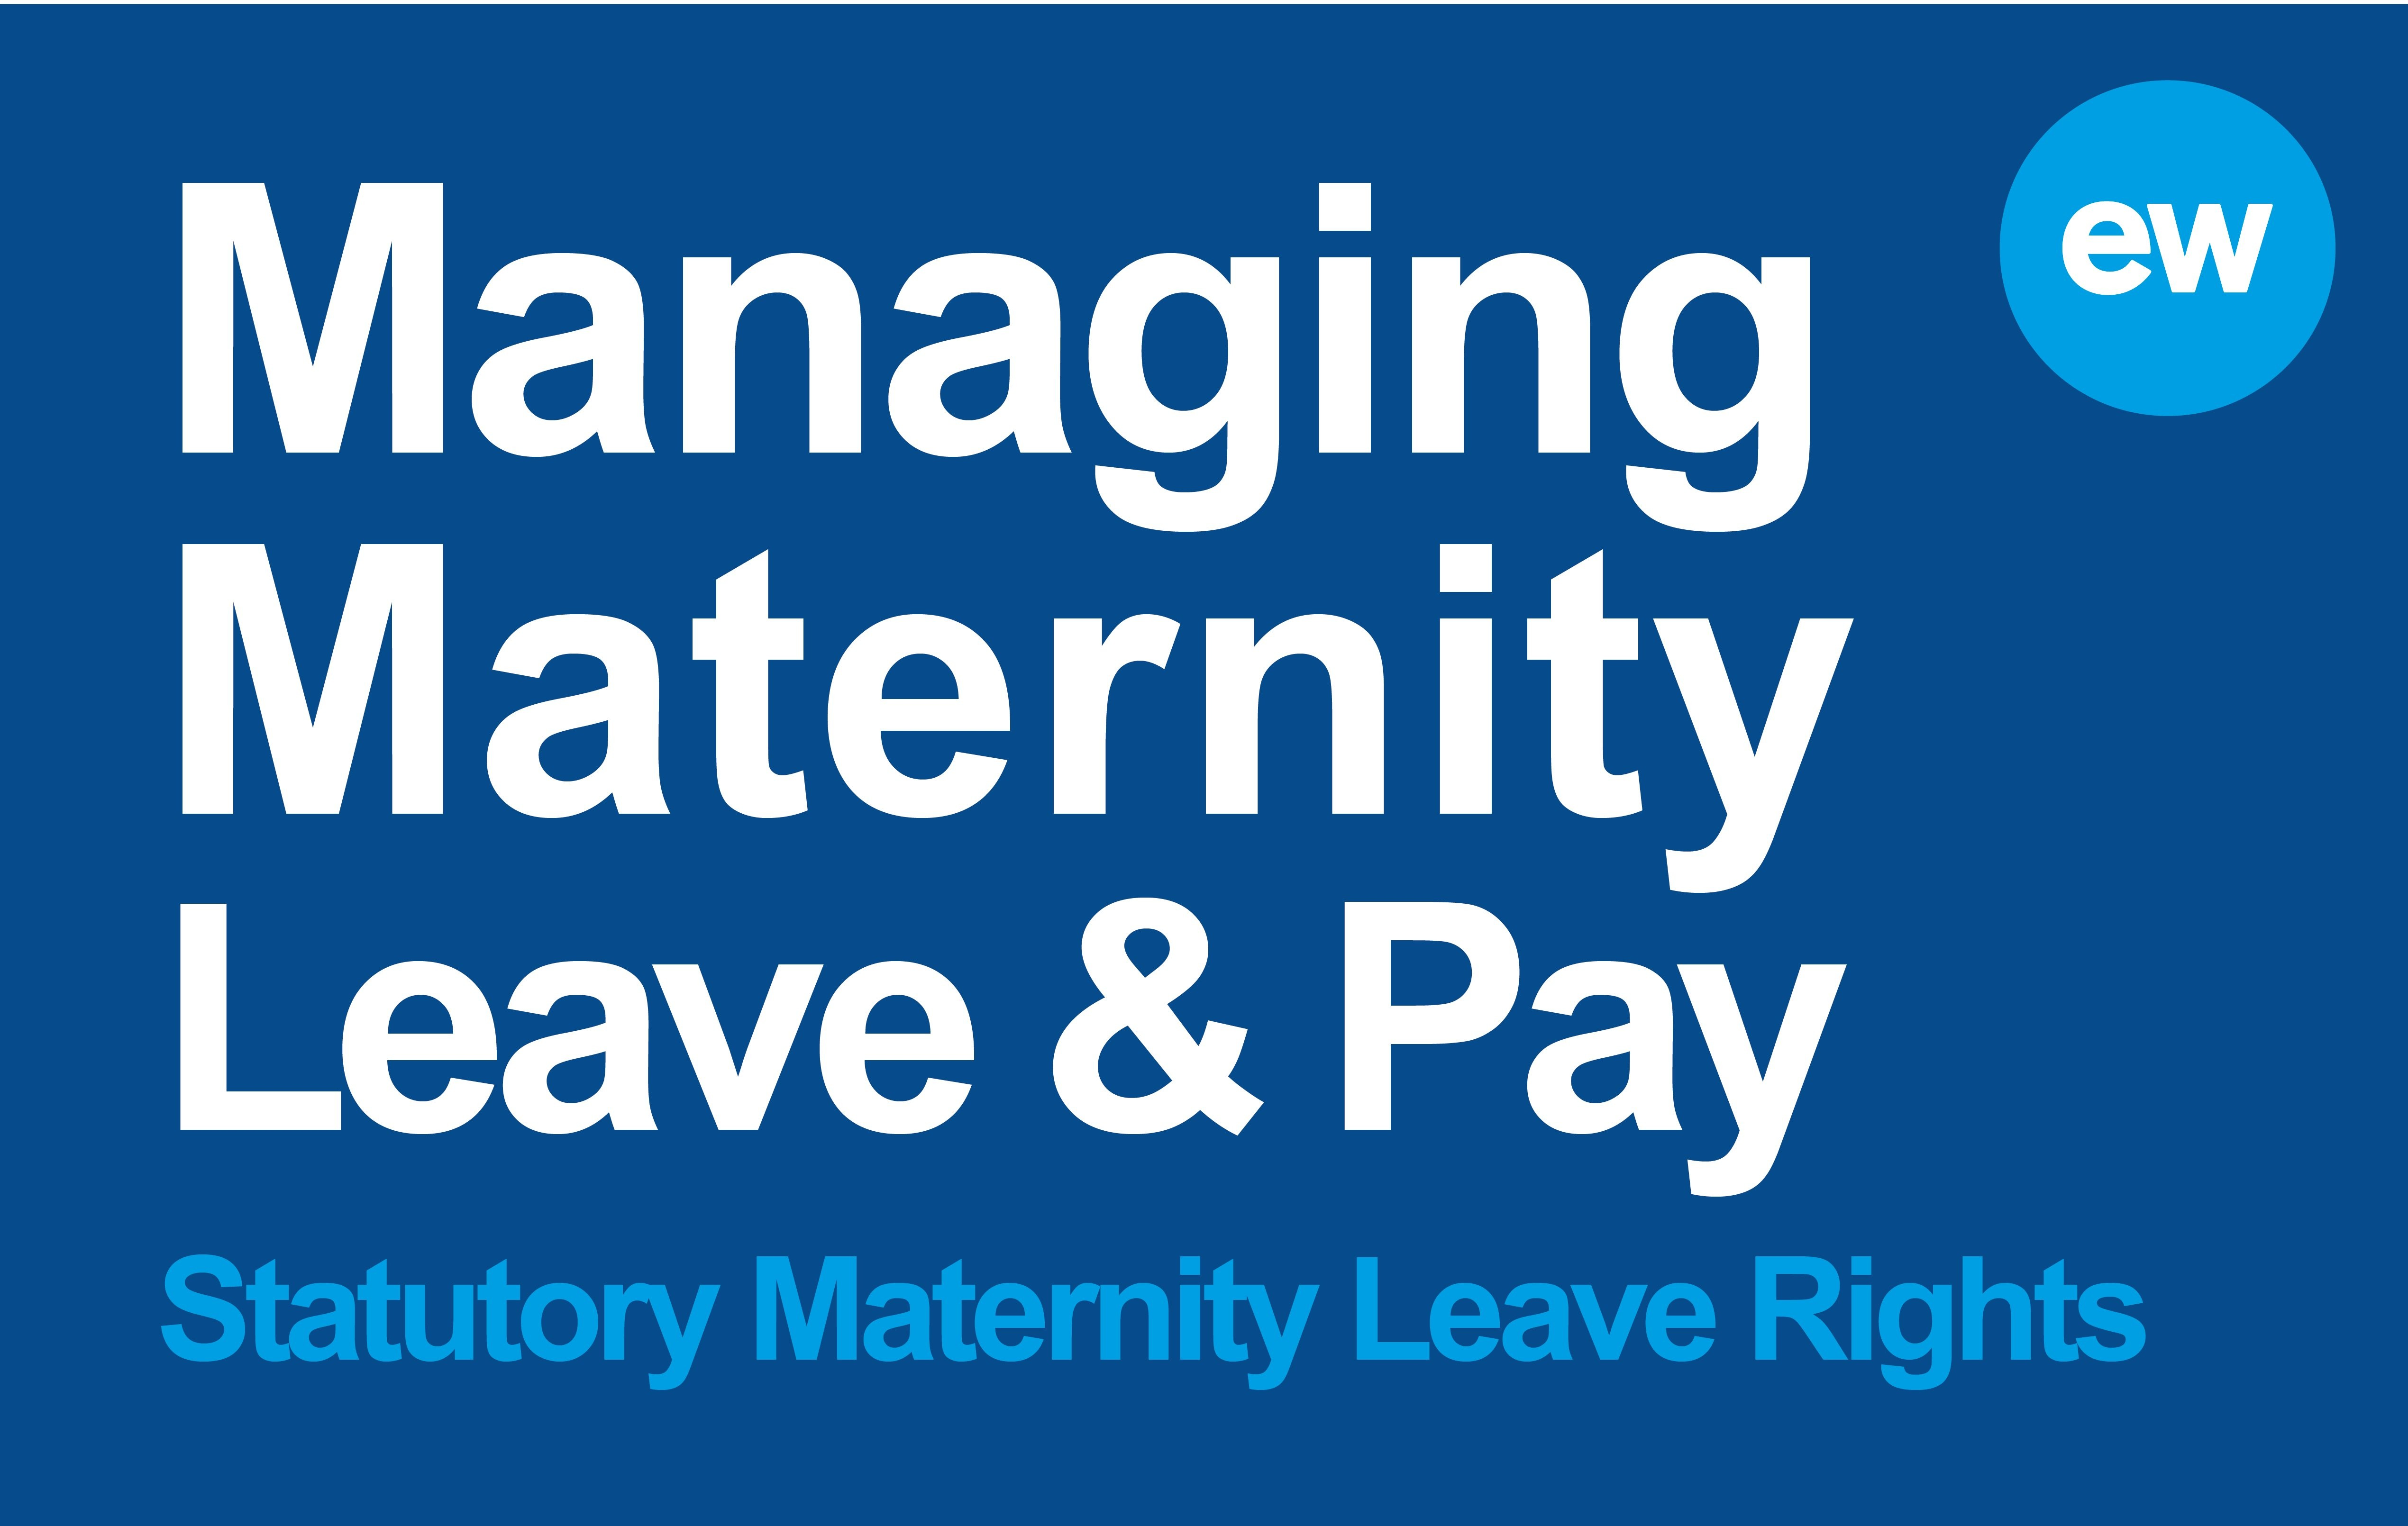 statutory maternity leave rights2